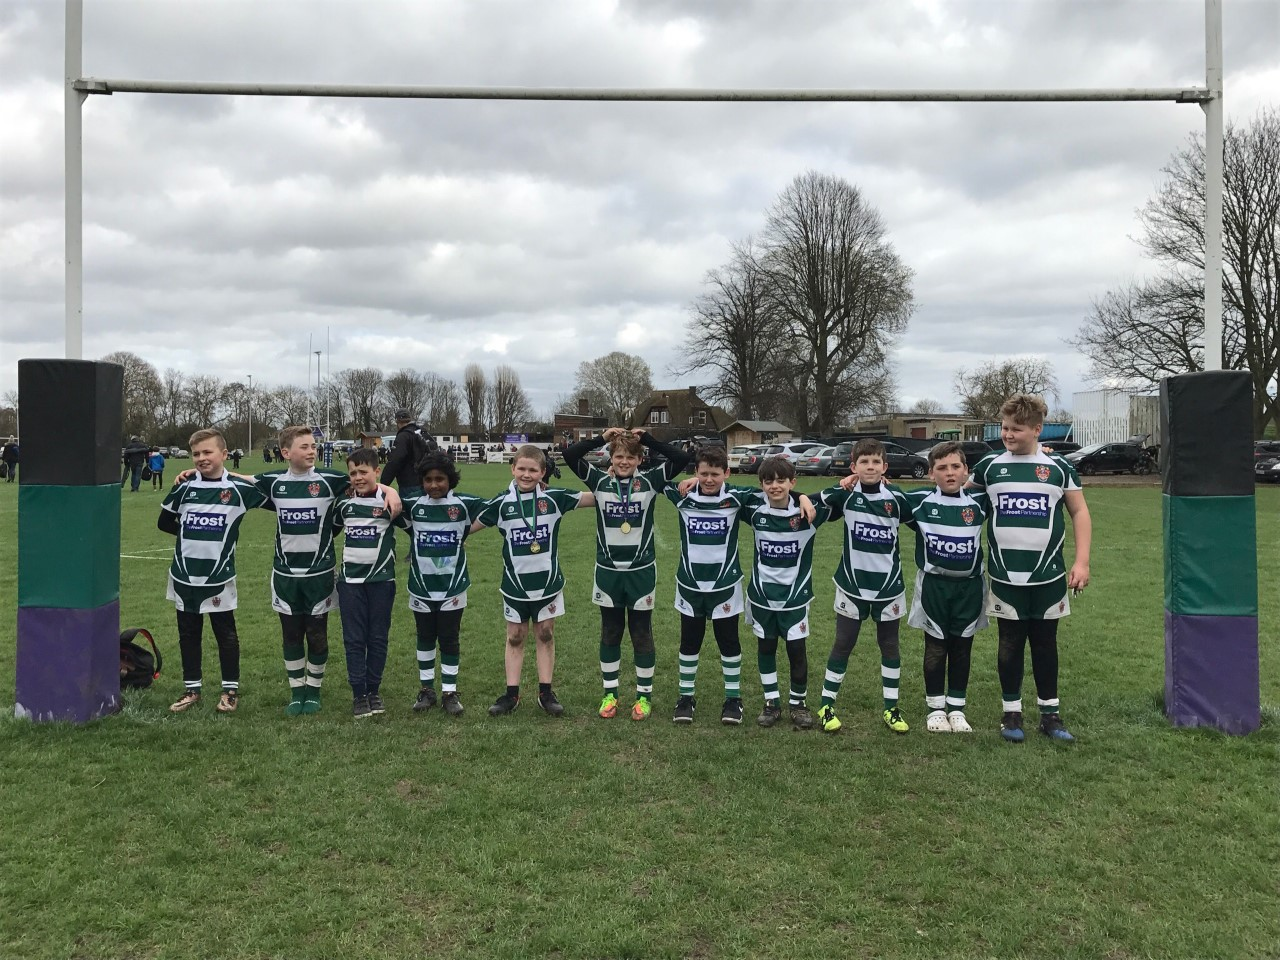 The Slough Under-11 team at the Weybridge Spring Minis Rugby Festival.